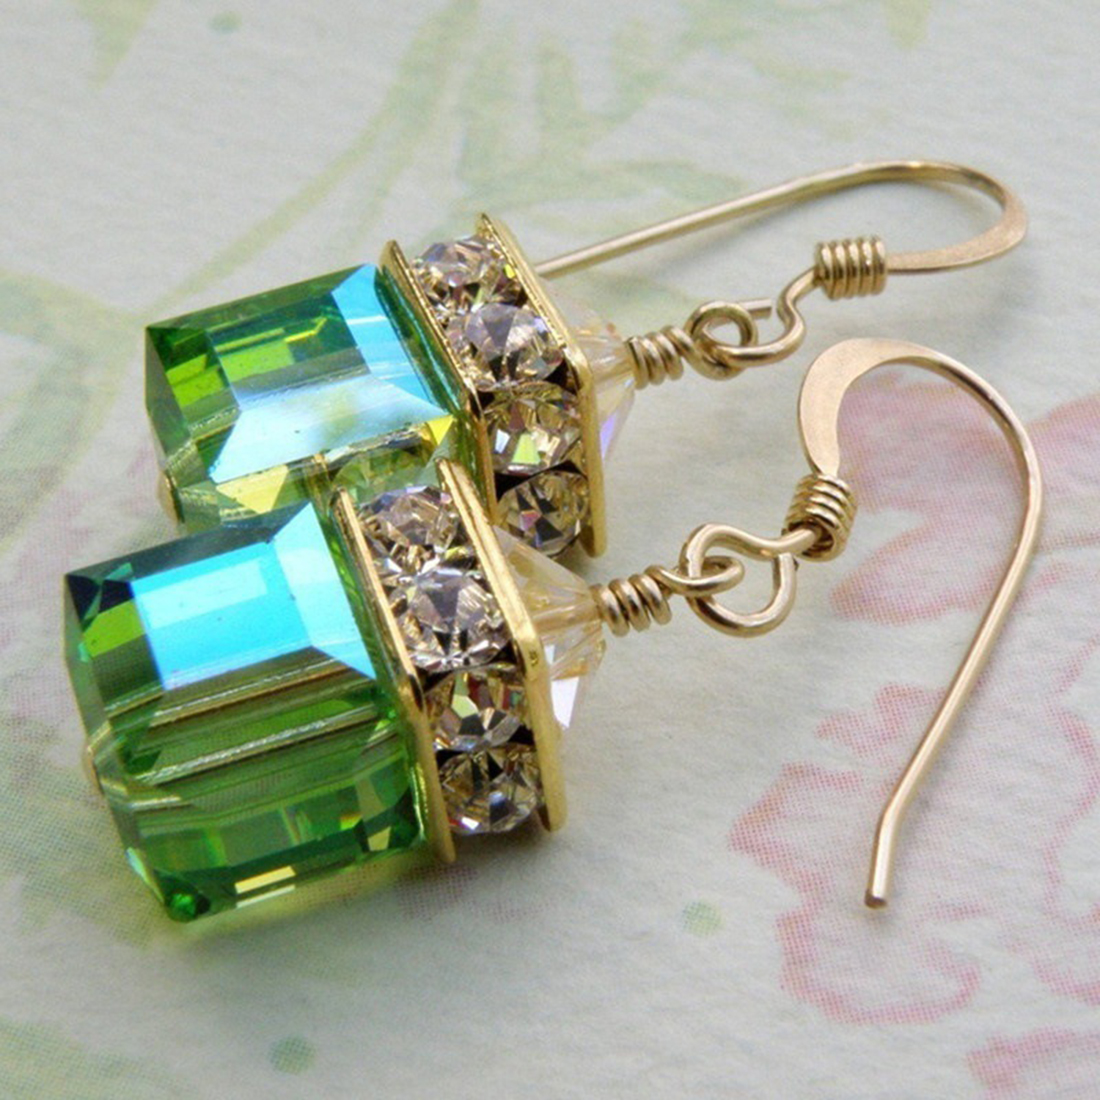 Vintage Green Zircon Crystal Square Big Stone Women Earrings Fashion Jewelry Christmas Gift